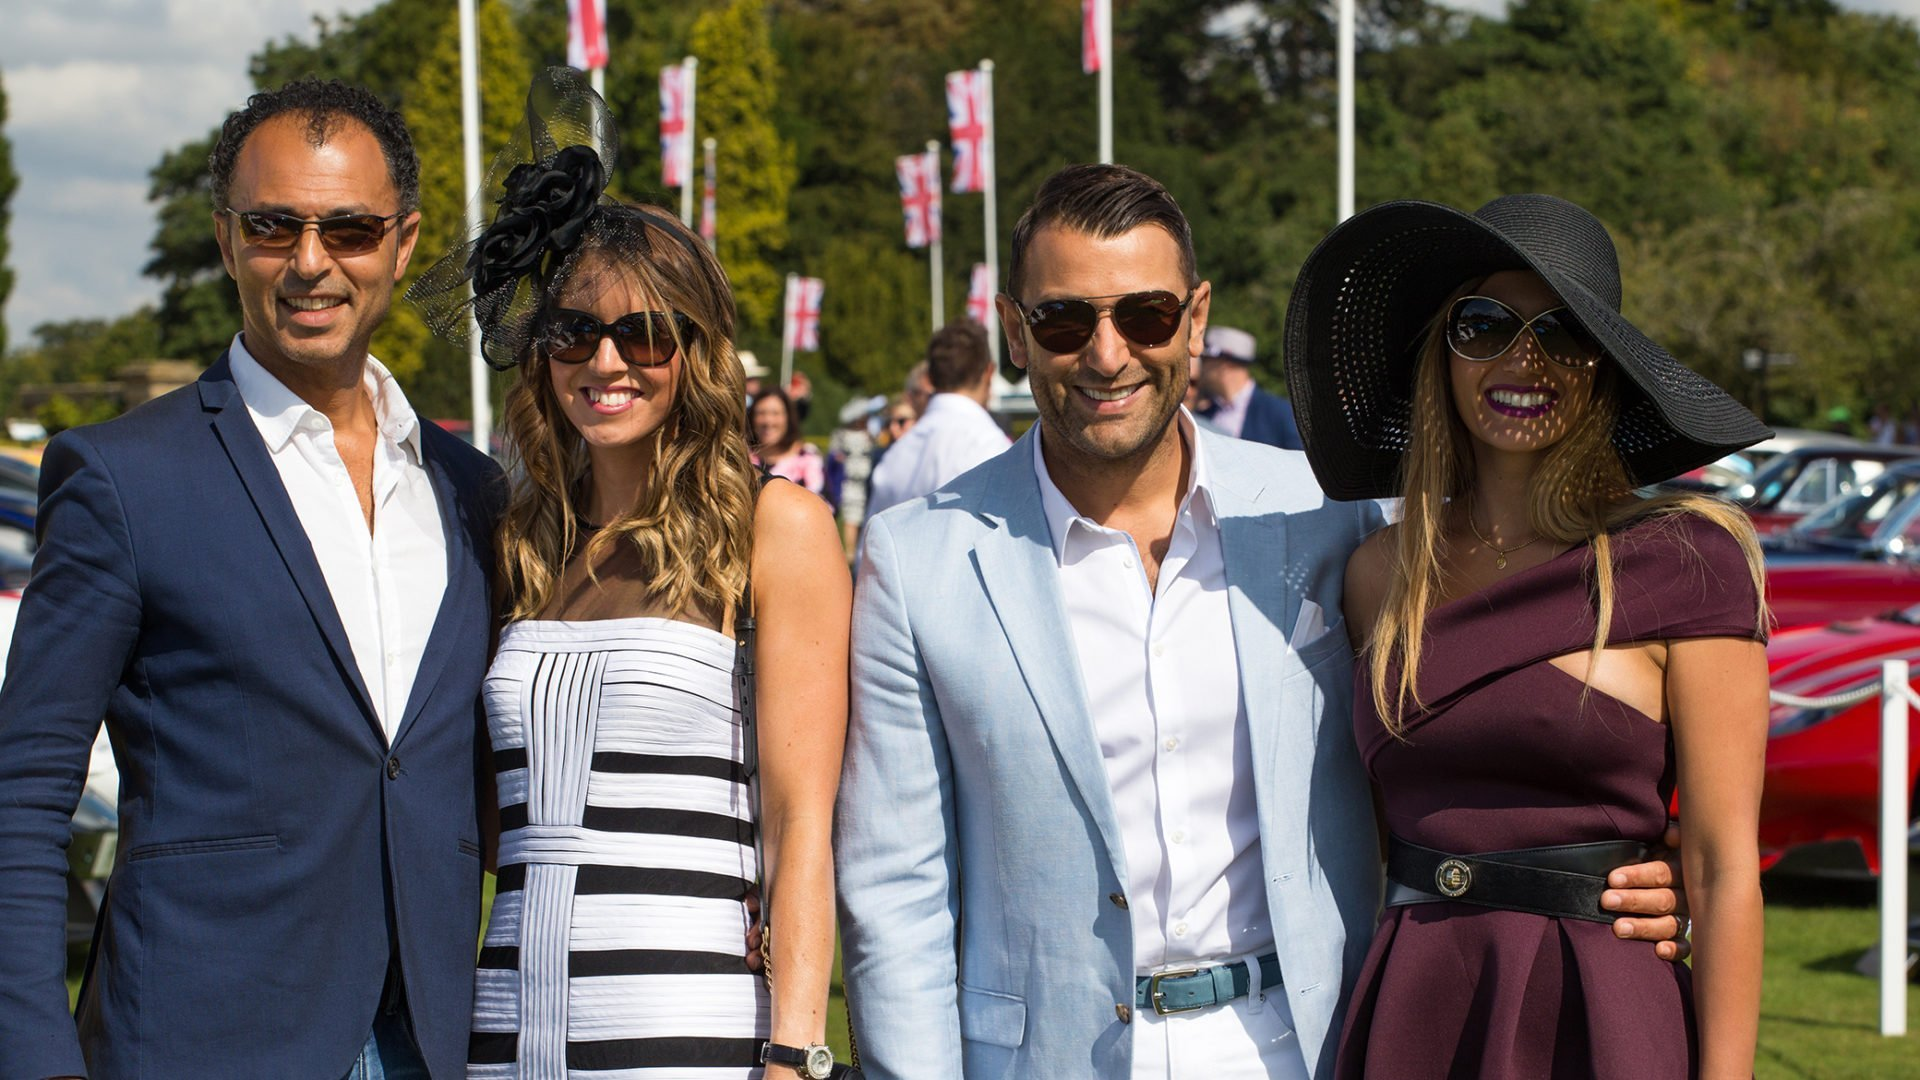 Salon Privé 2019 Garden Party